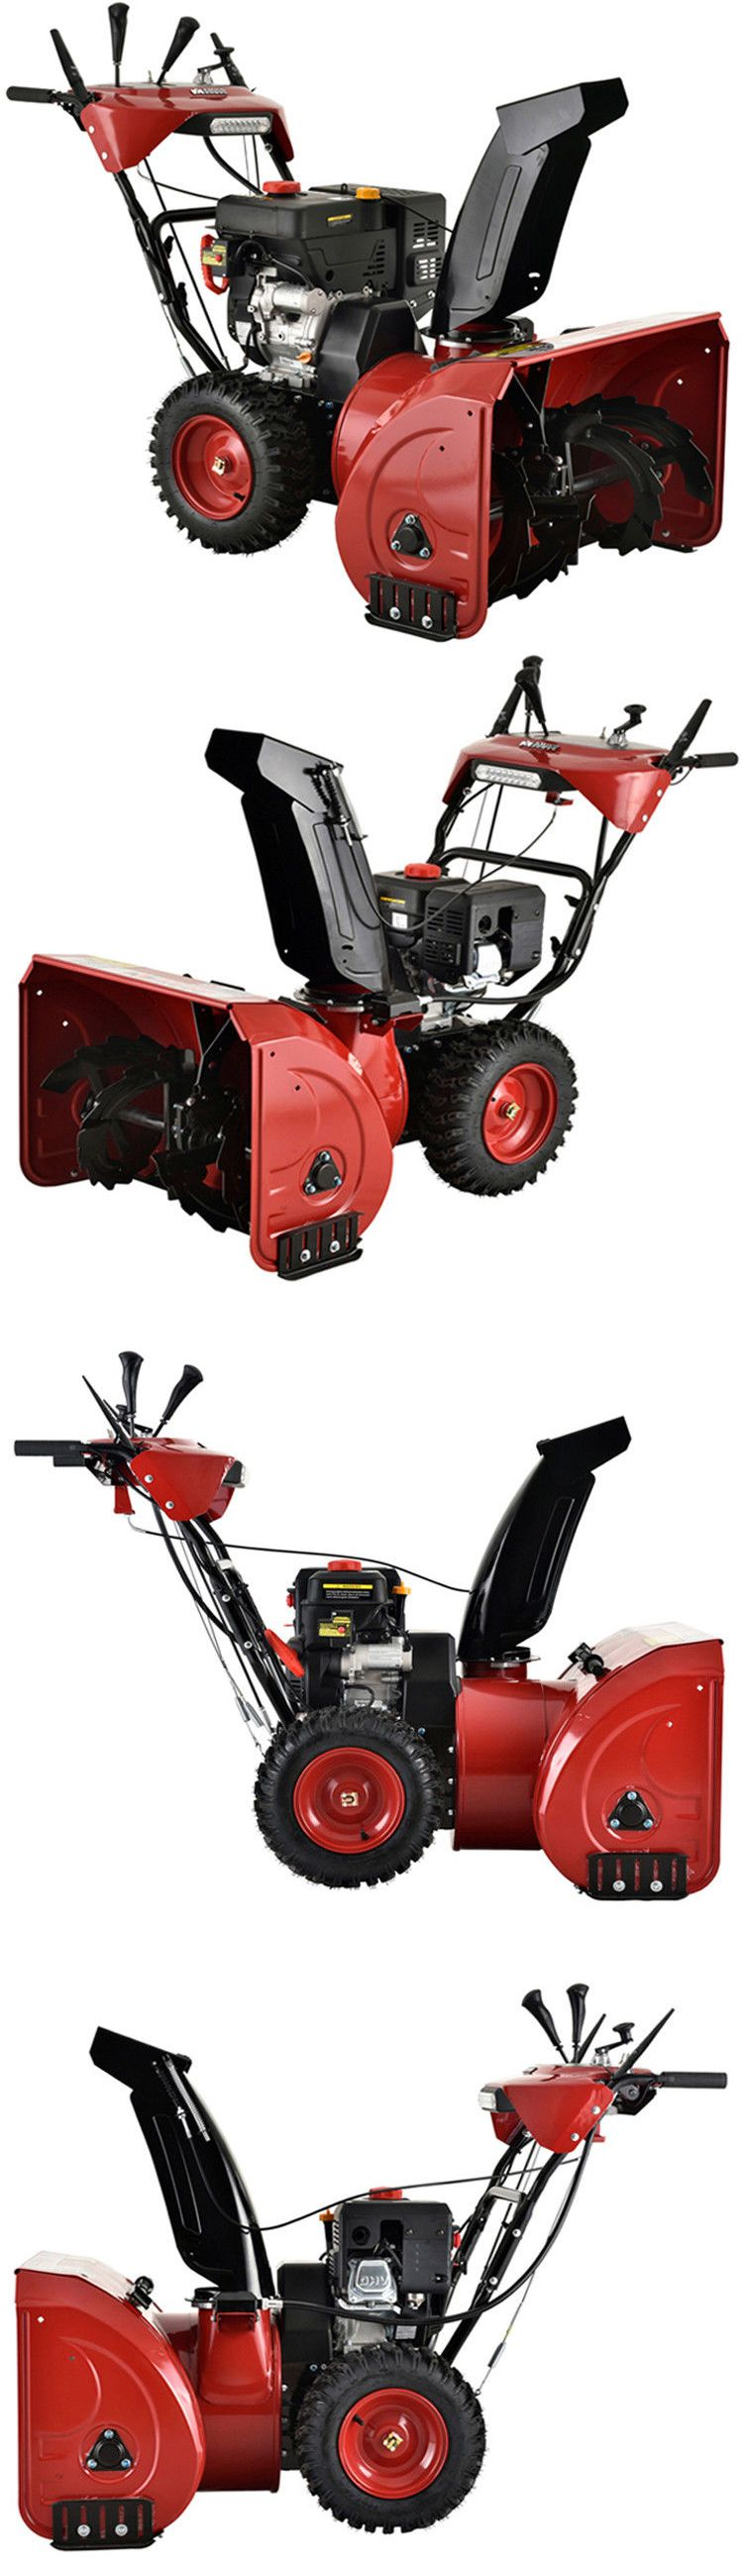 how to start a snowblower with electric start